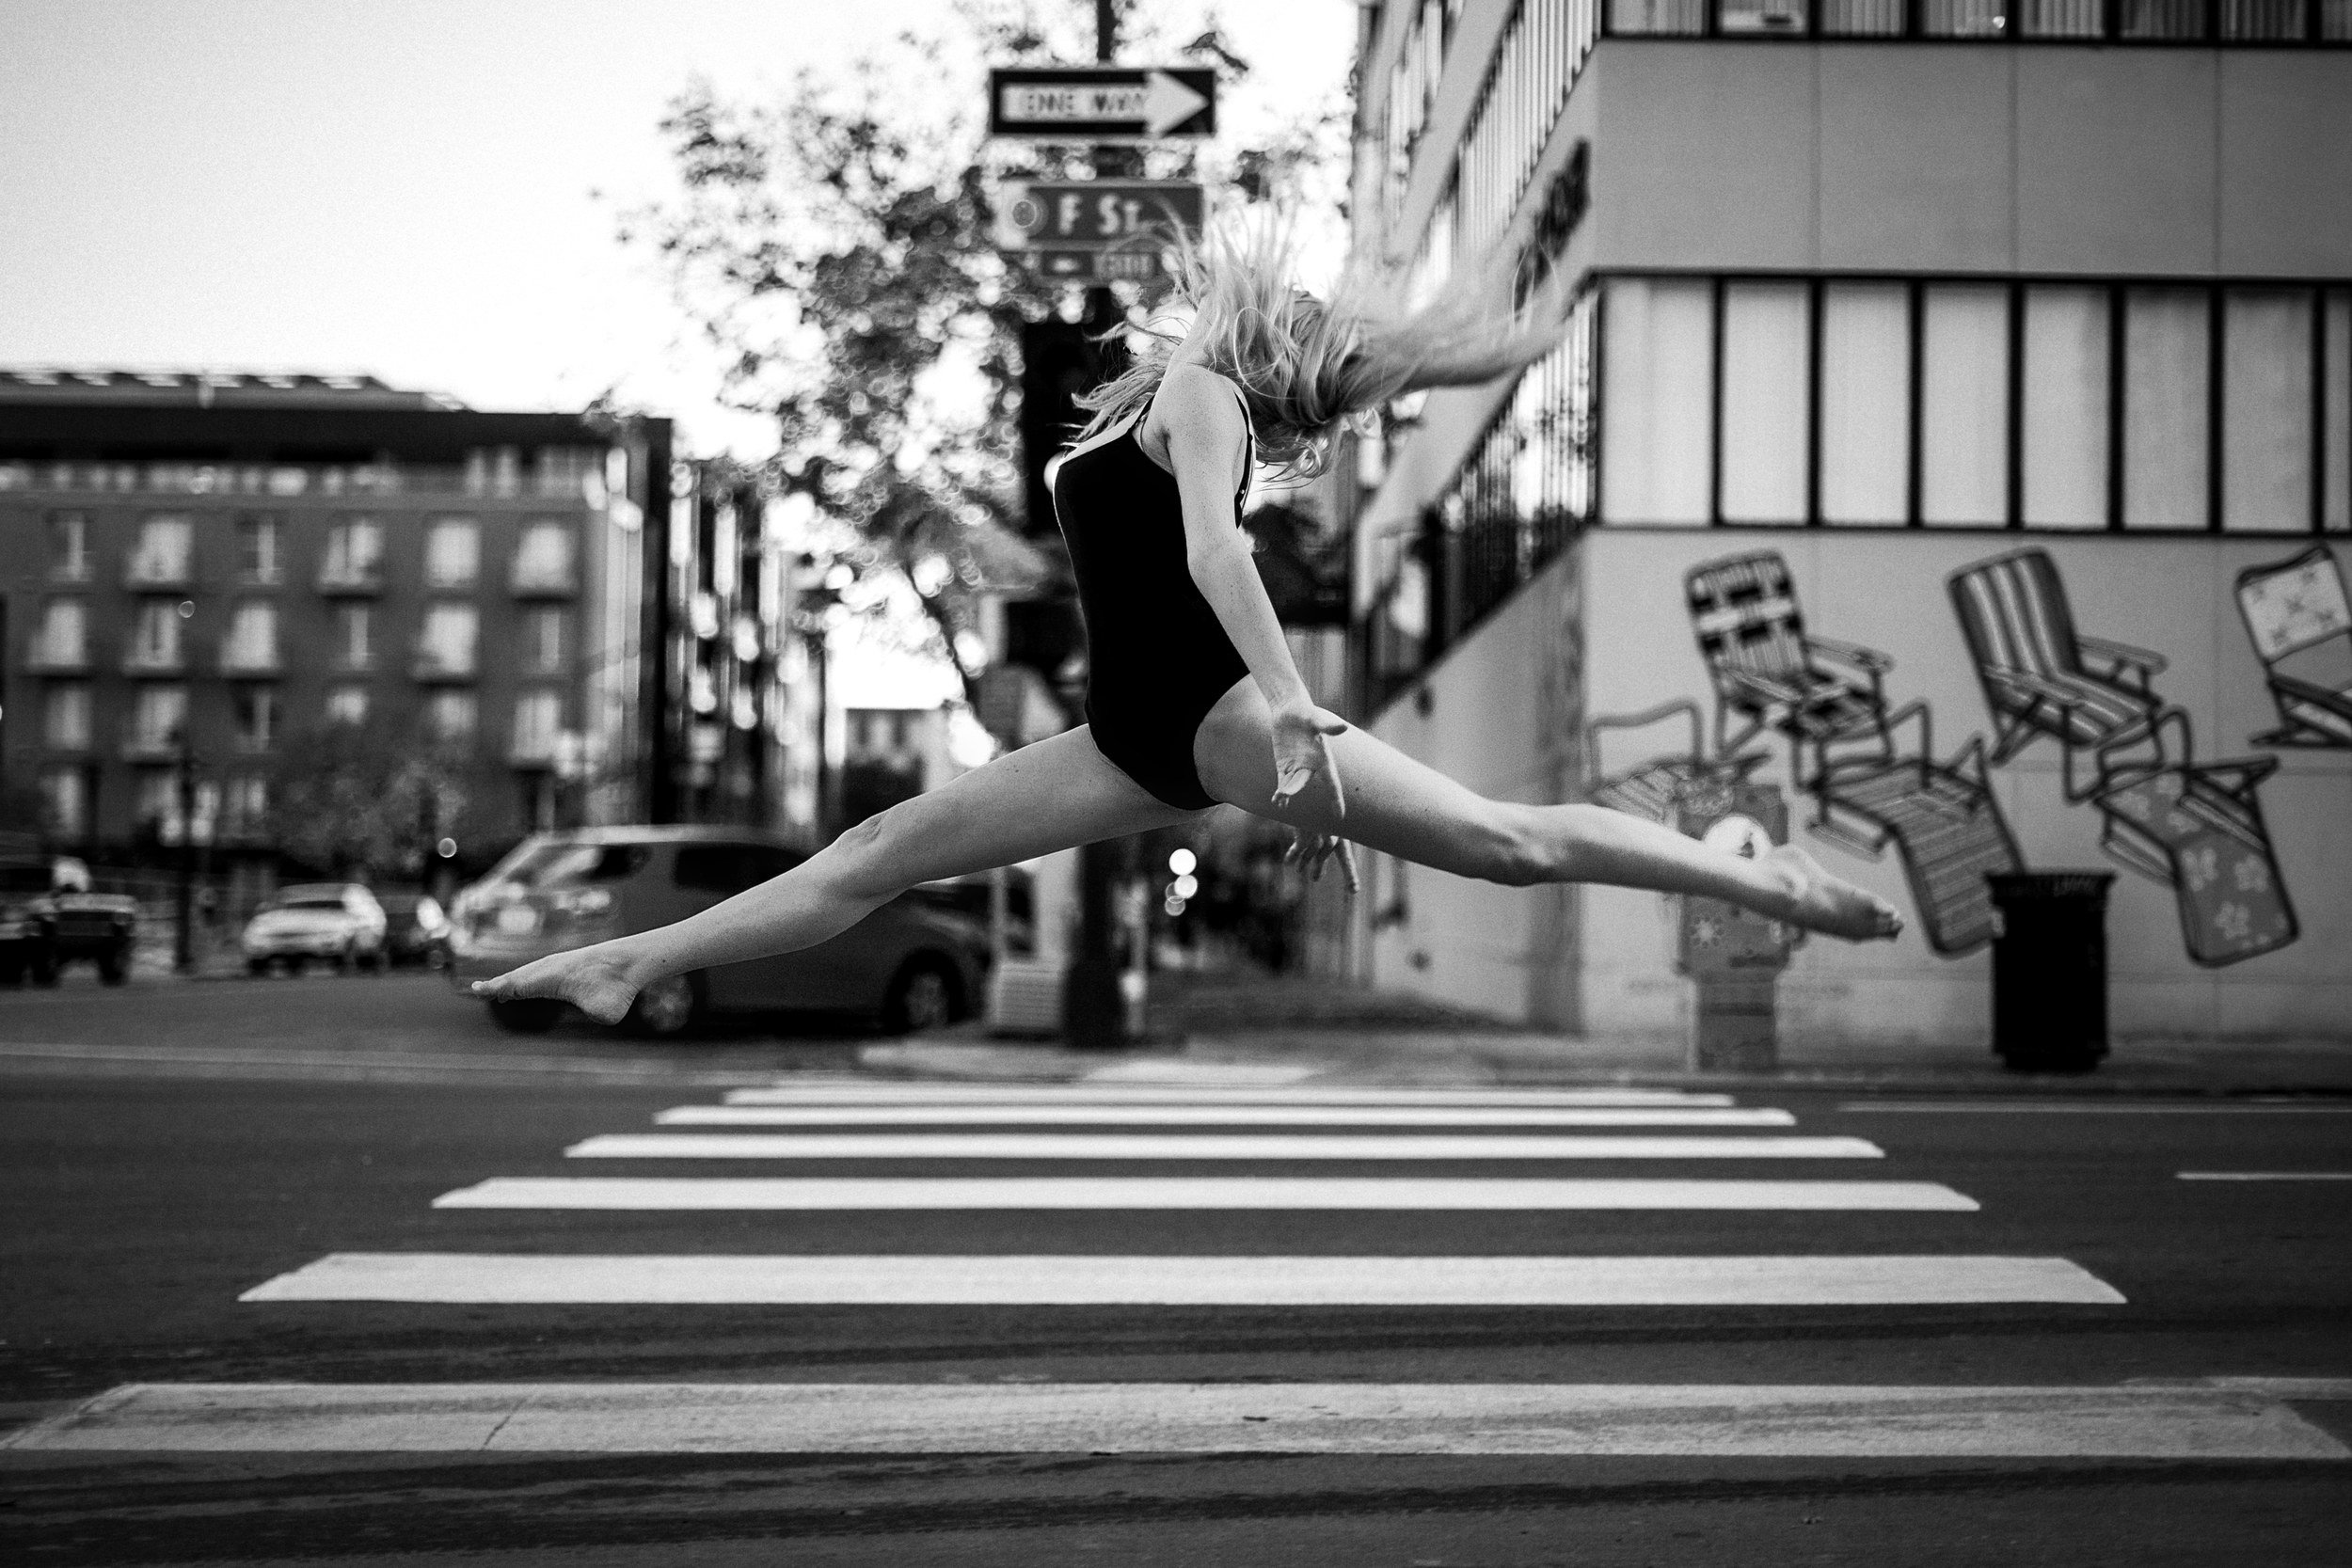 san diego wedding   photographer | monotone shot of barefoot blonde woman doing high squat on   pedestrian lane